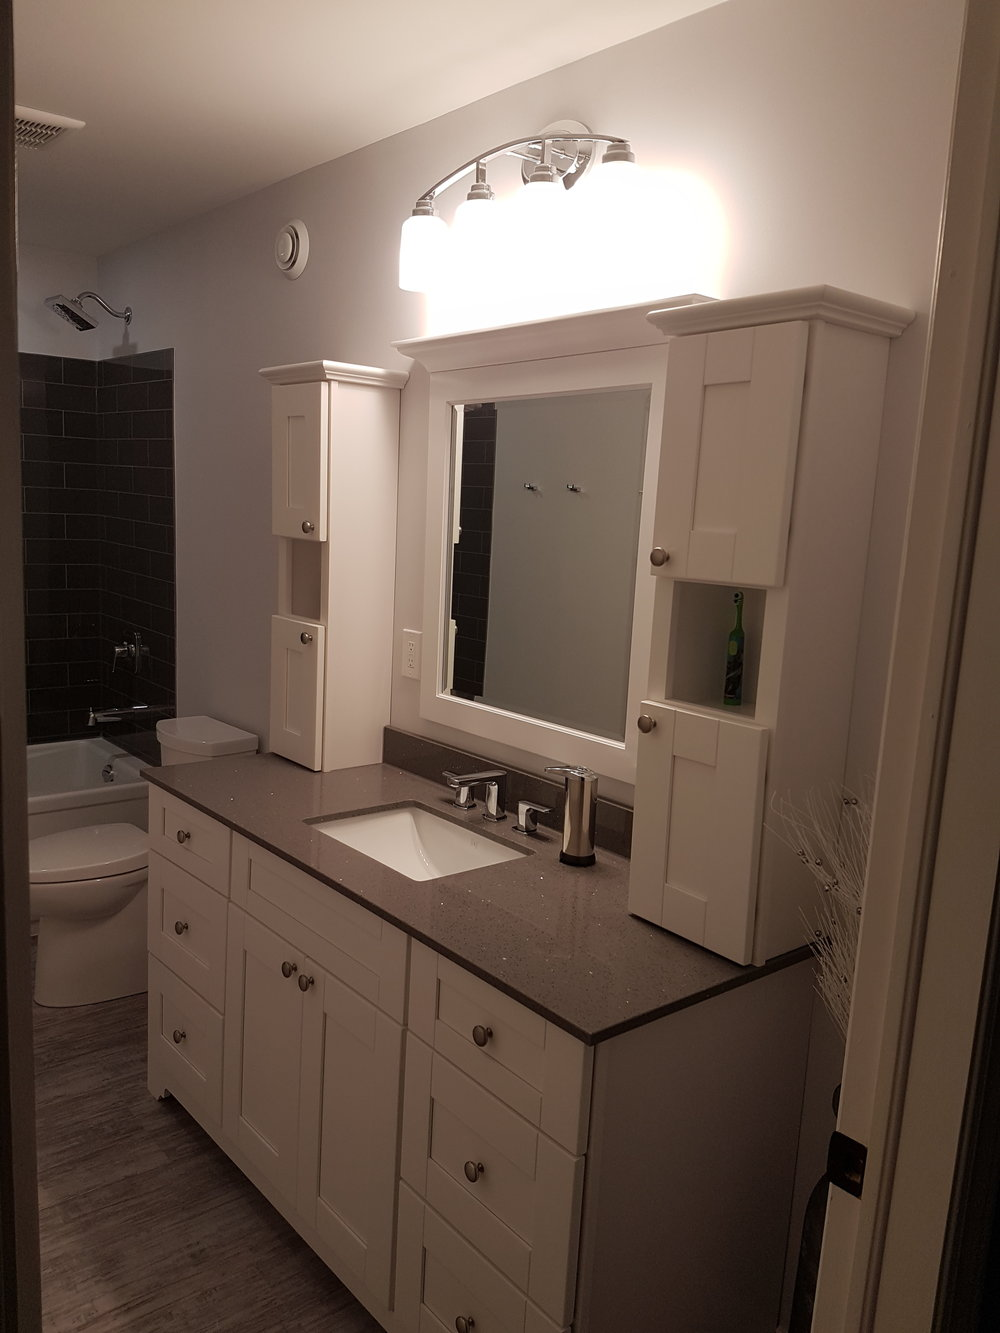 Bathroom Reno 25.jpg